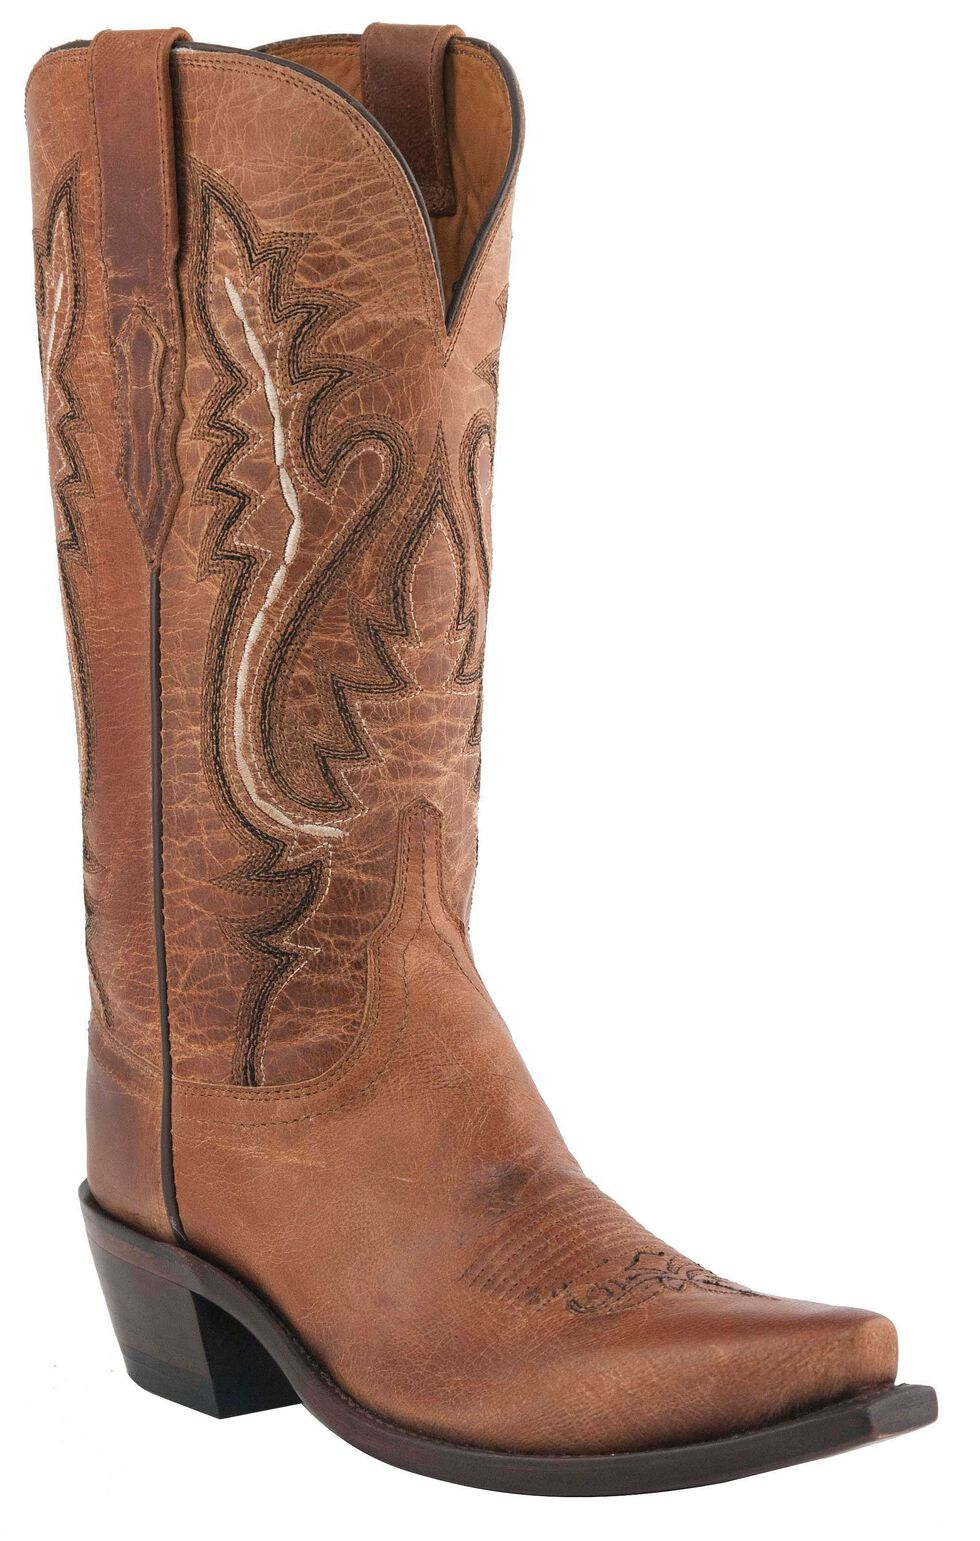 Lucchese Handmade 1883 Cassidy Cowgirl Boots - Snip Toe, Tan, hi-res